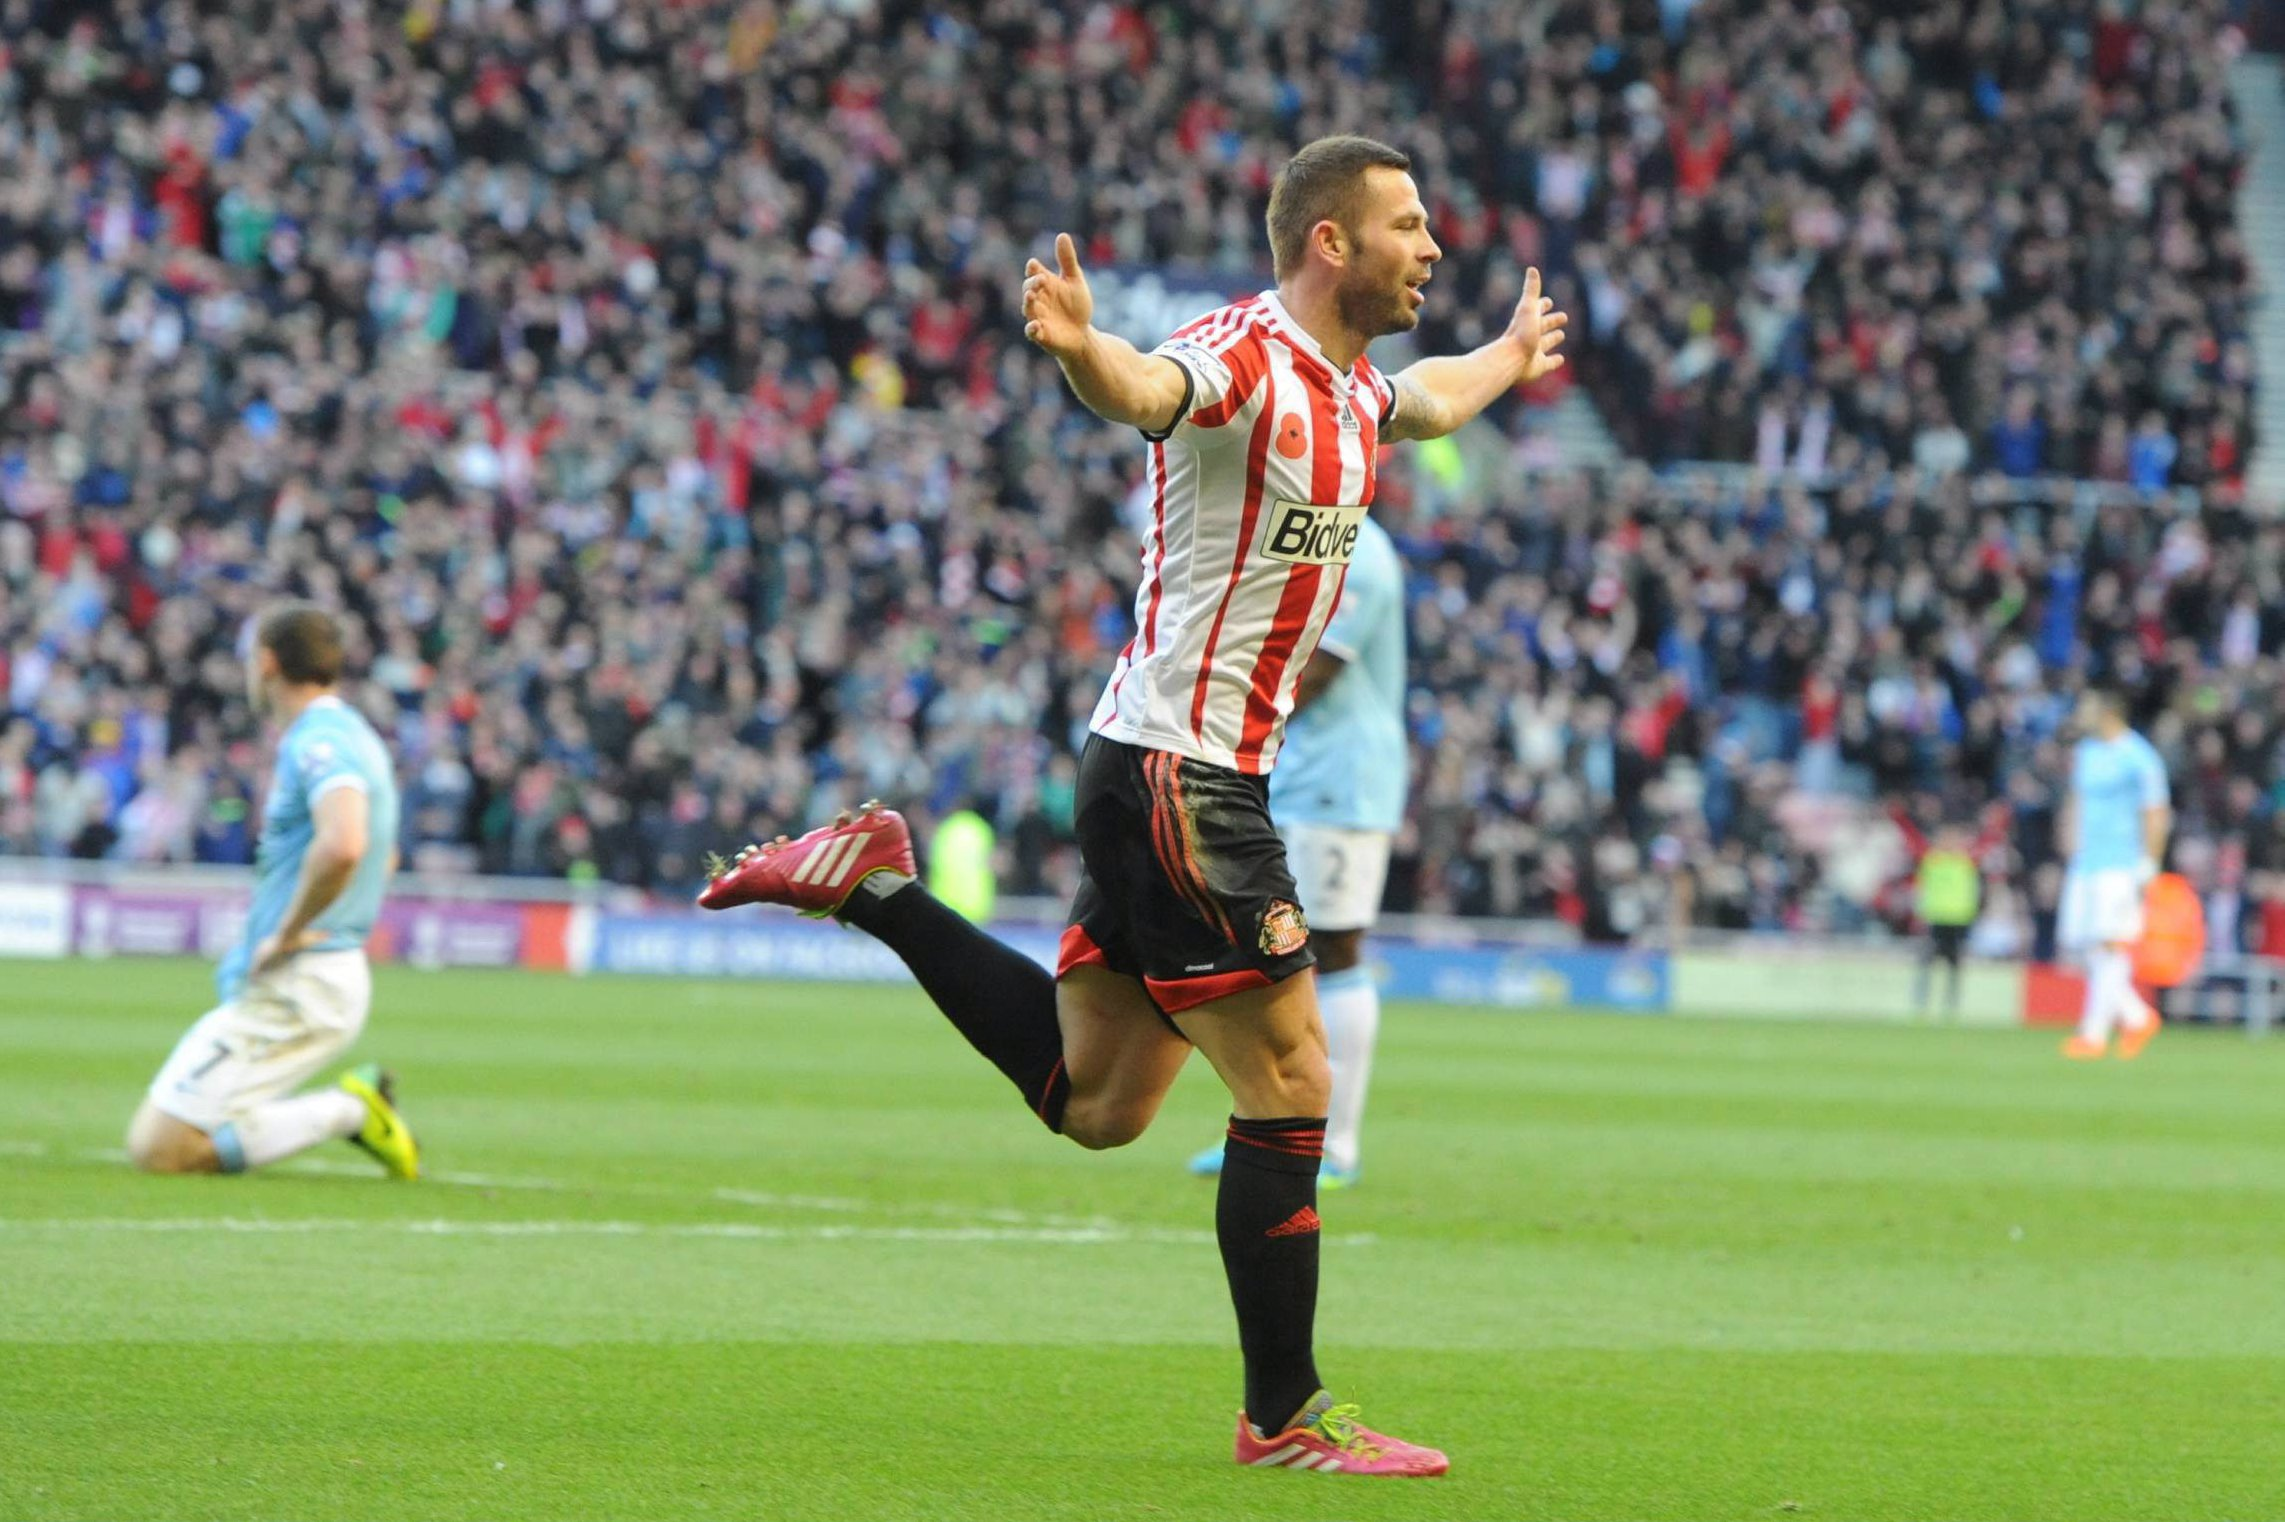 Wembley bound: Phil Bardsley's goal helped push the semi-final with Manchester United to penalties